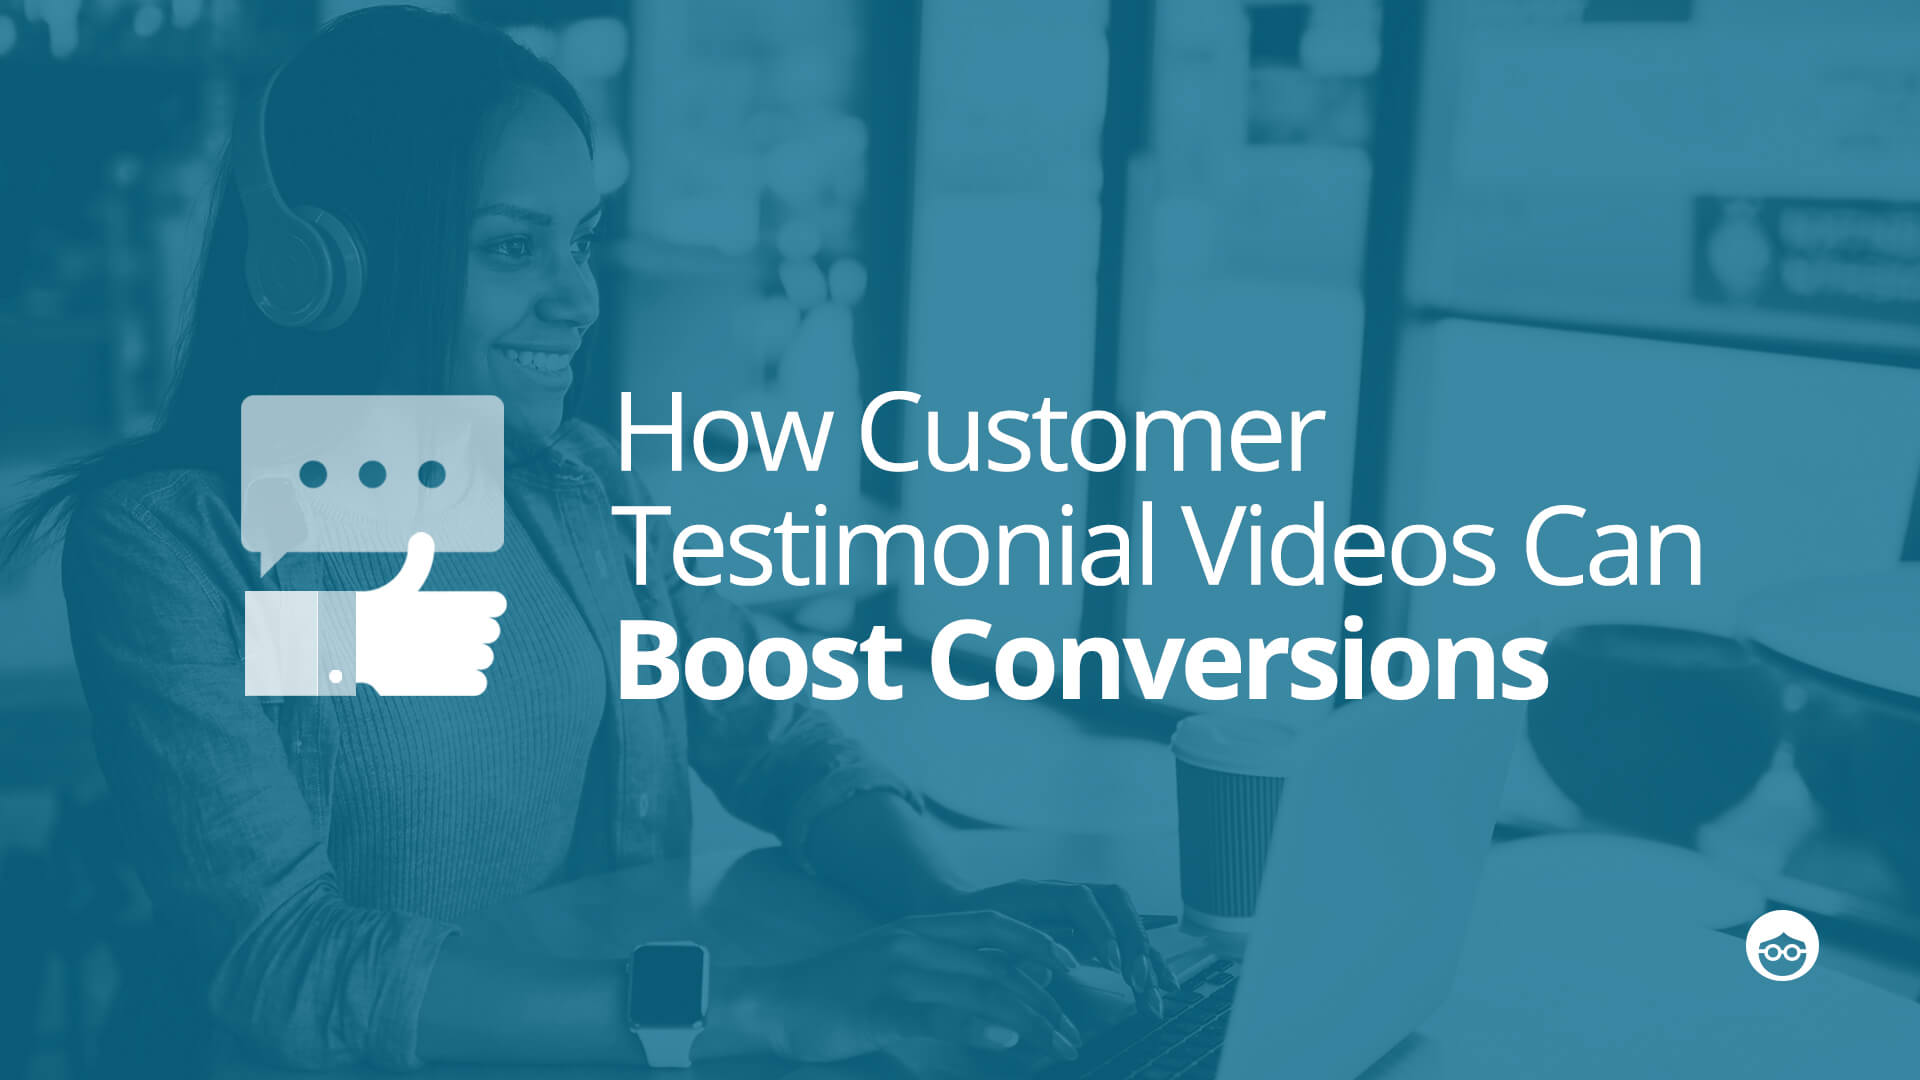 5 Steps to Create a Customer Testimonial Video that Converts